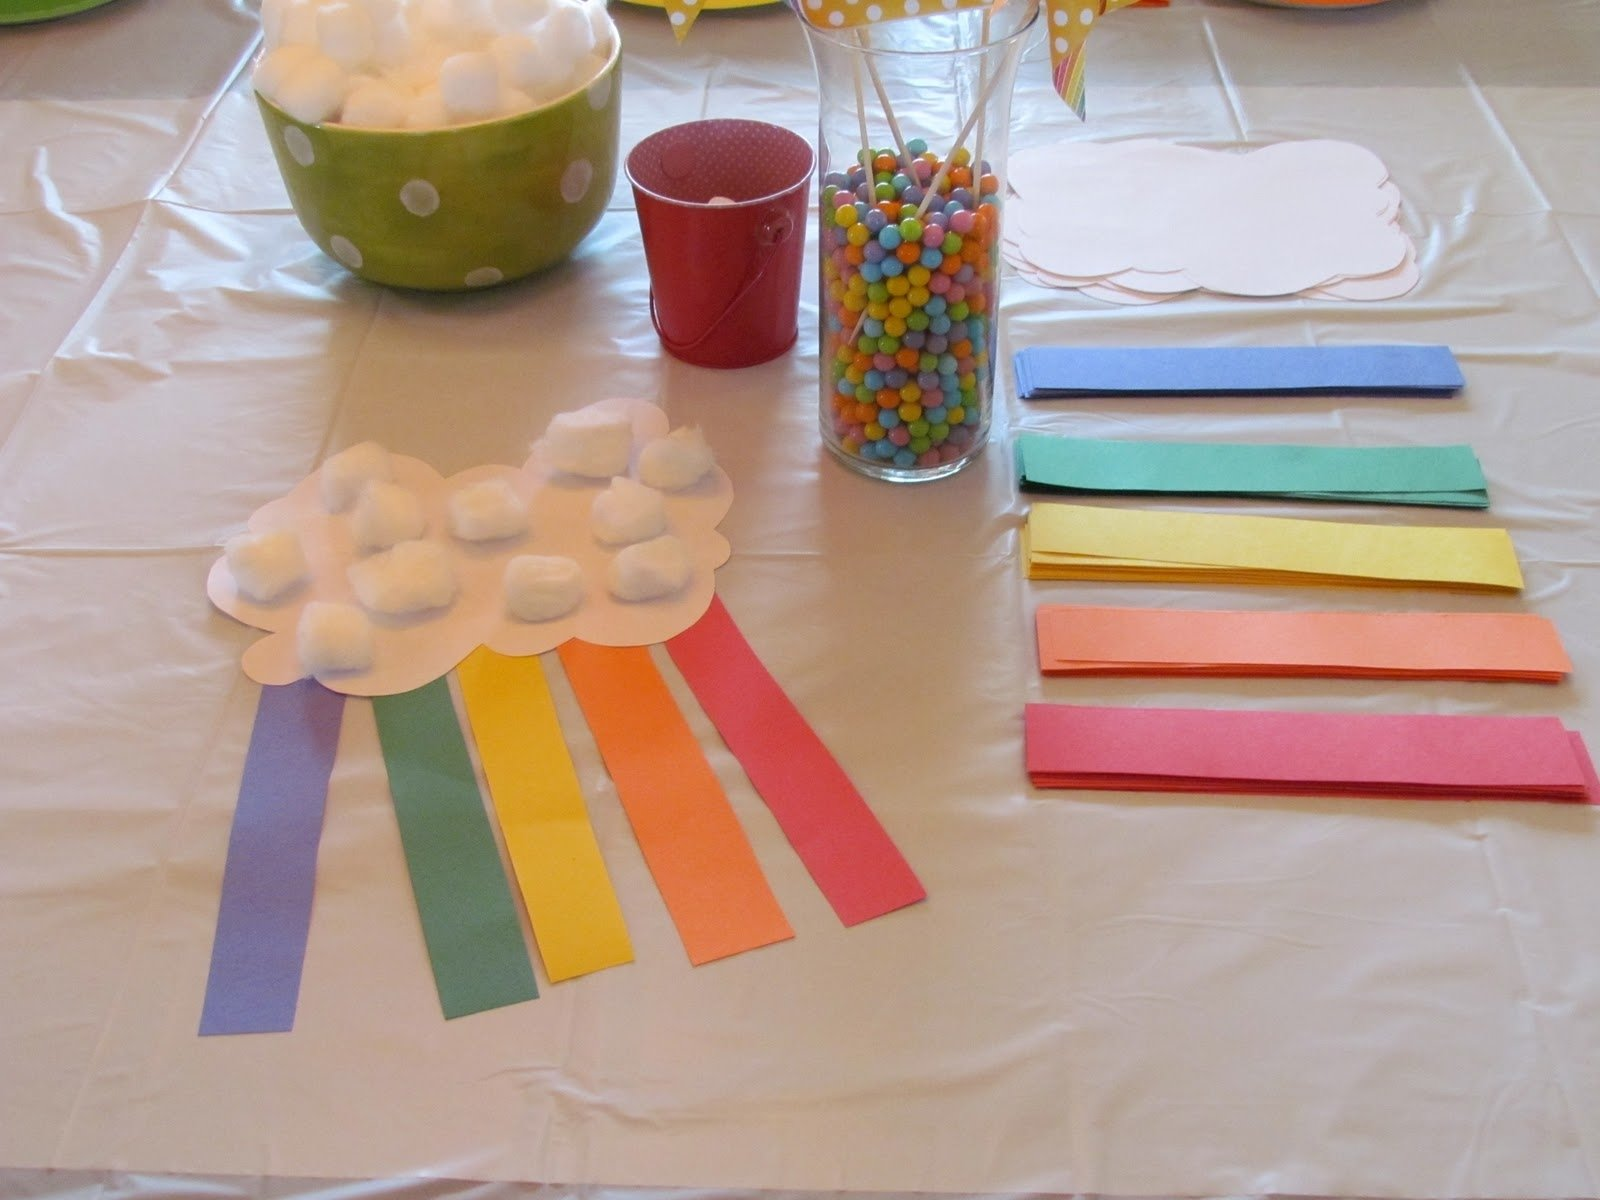 10 Most Recommended Spring Craft Ideas For Preschoolers photos of toddler spring craft ideas cr on spring craft for kids new 2021